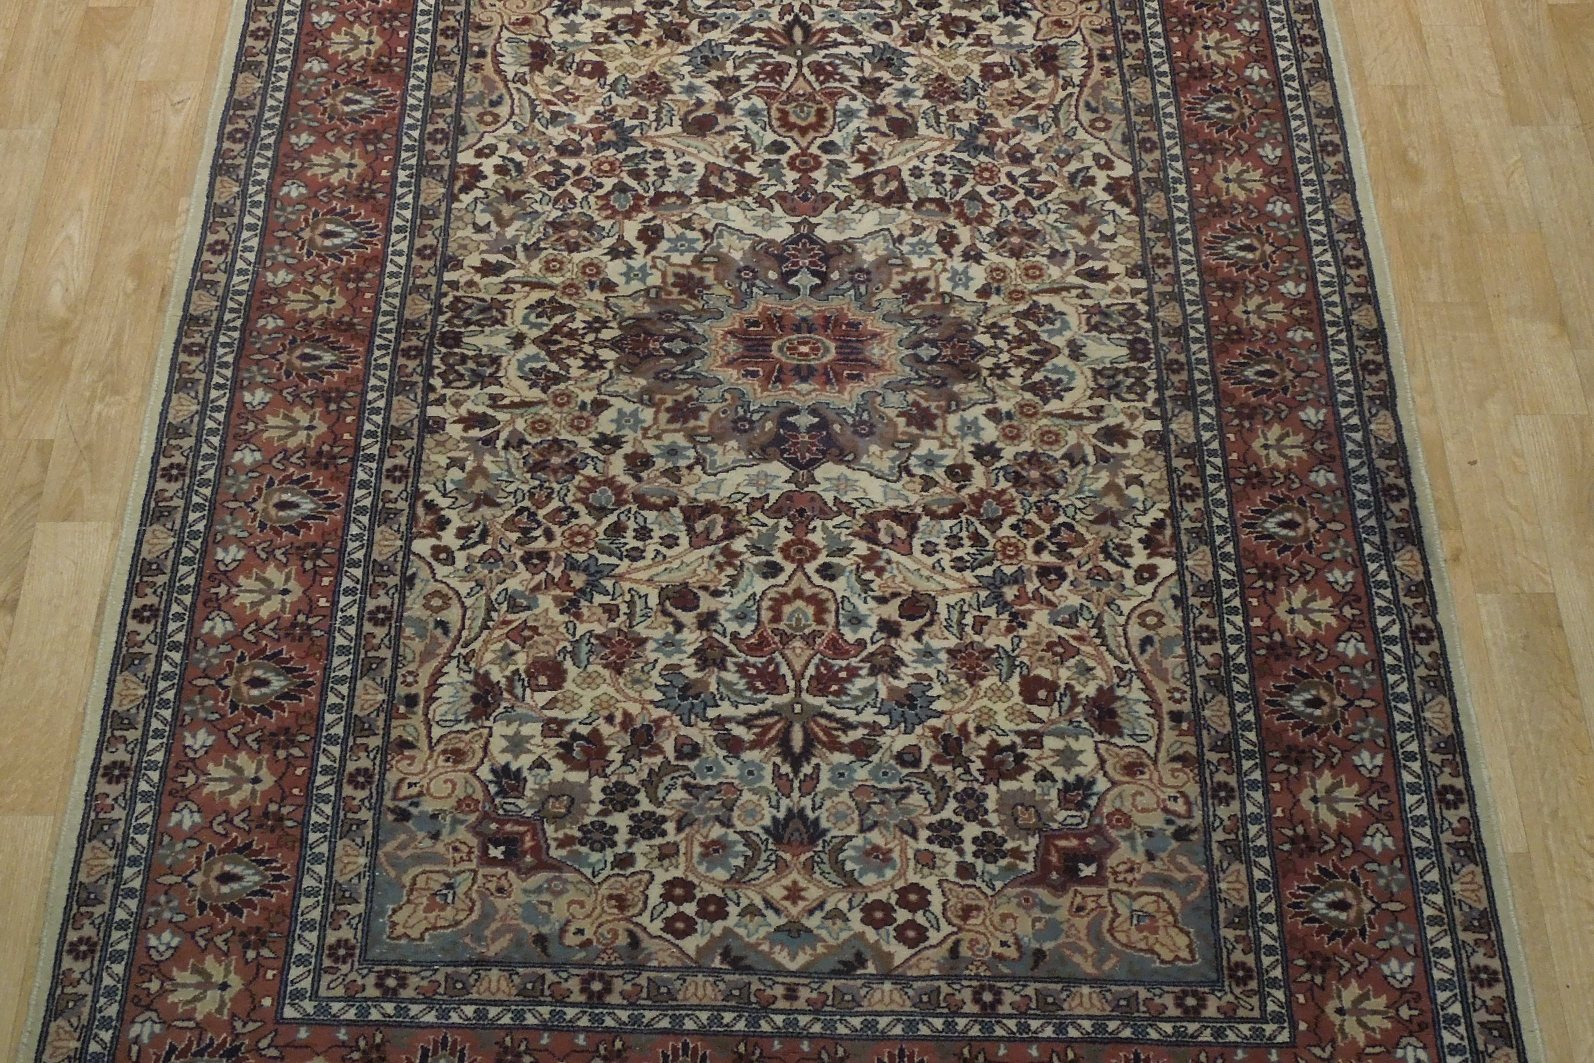 Ivory Wool Carpet 5 x 7 Fine Quality Reproduction Traditional Handmade Rug image 12